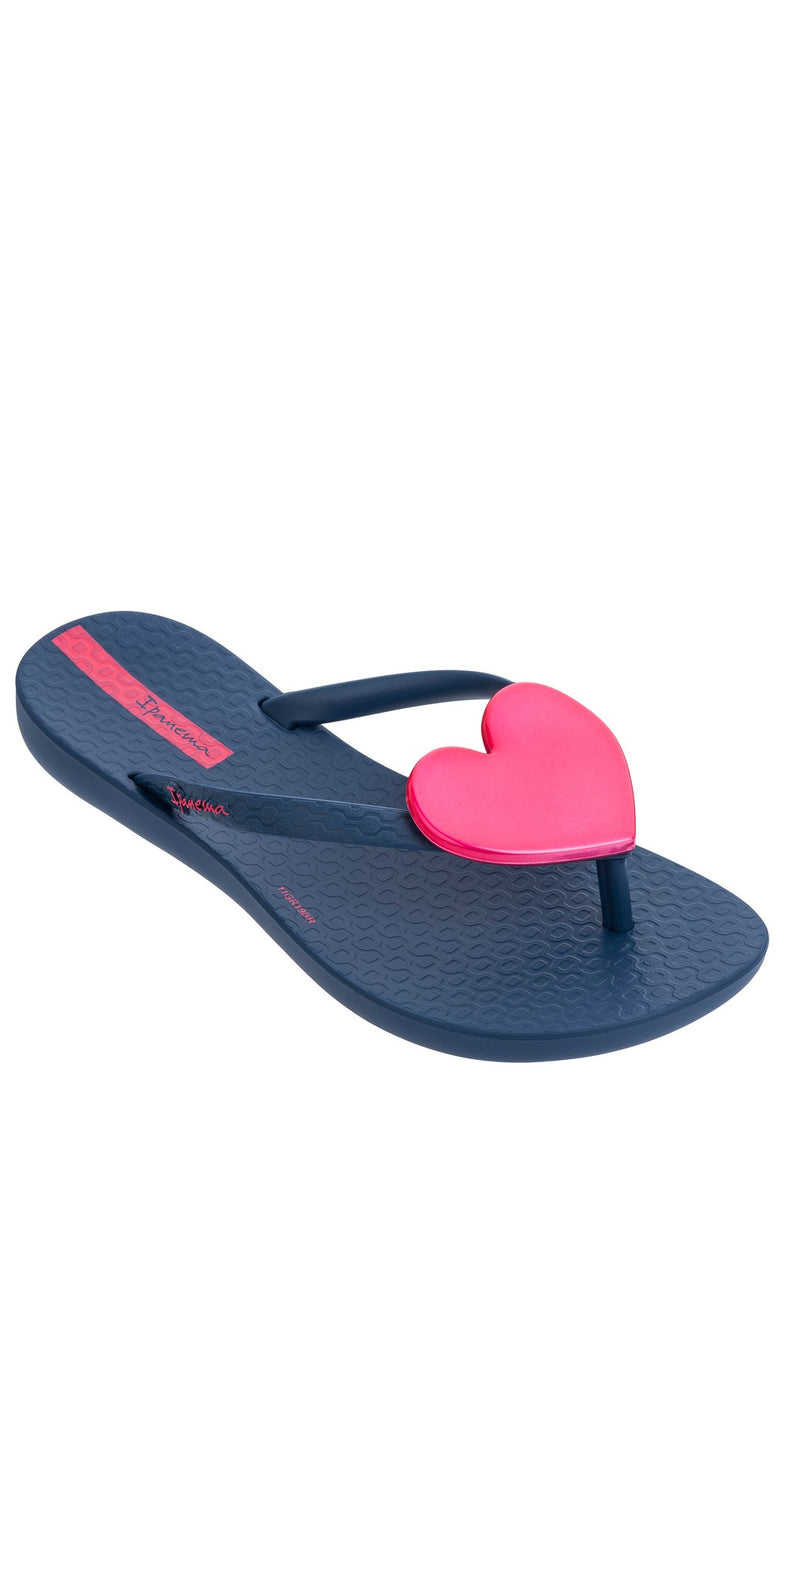 iPanema Kids Wave Heart Flip Flop